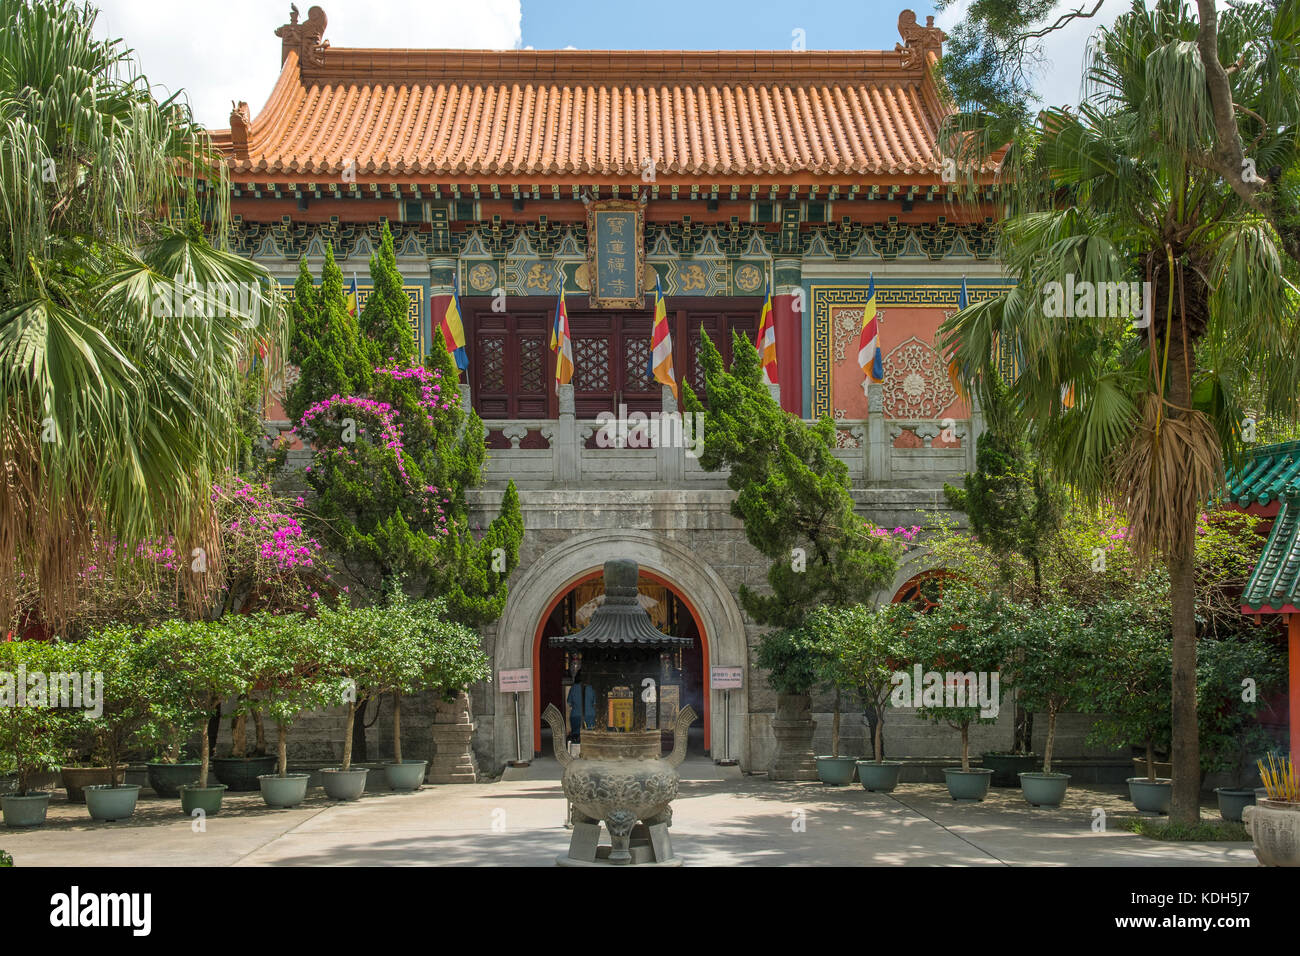 First Hall, Po Lin Monastery, Lantau Island, Hong Kong, China - Stock Image